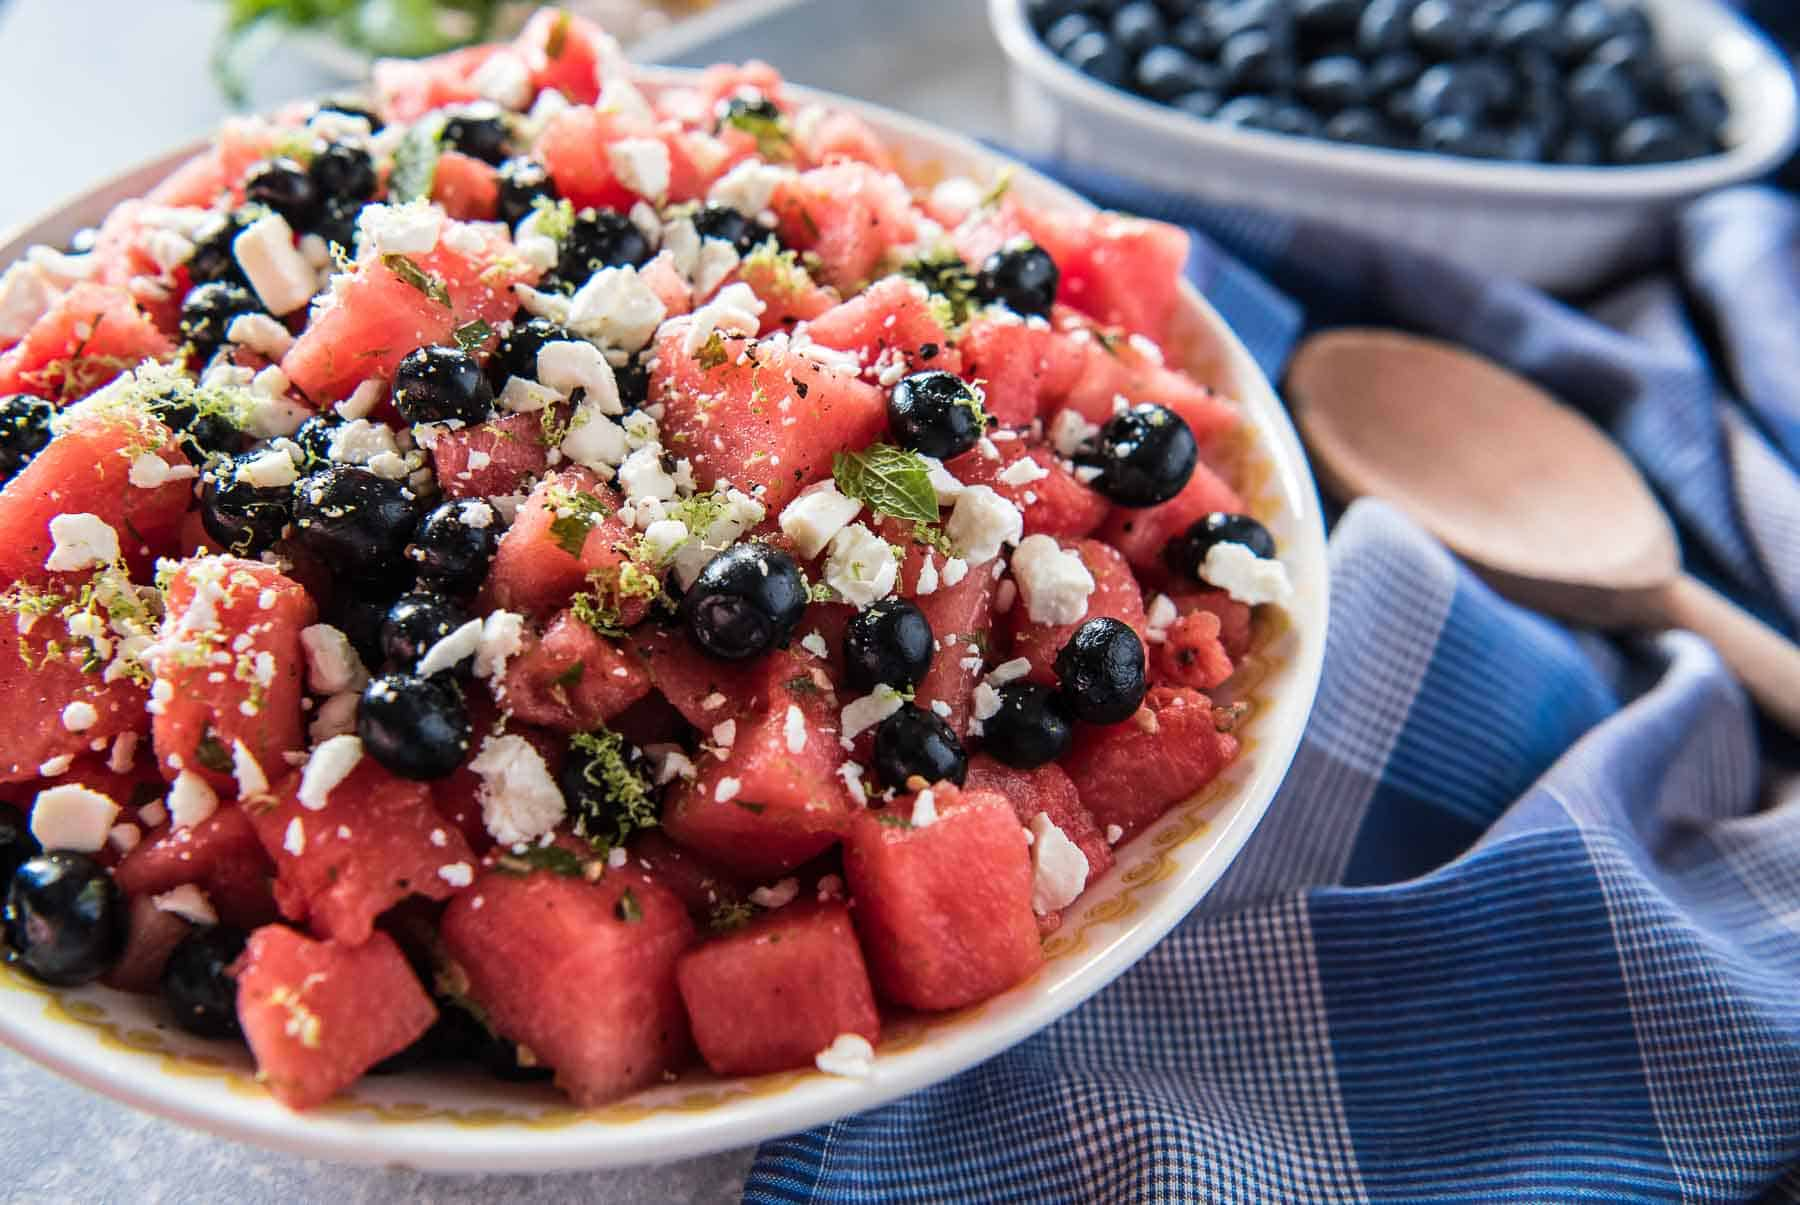 A bit of sweet, a little tart, and a touch of savory, this Blueberry Watermelon Salad is a delightful addition to any summer picnic! Fresh blueberries & watermelon play nicely with lime, feta, and refreshing mint.